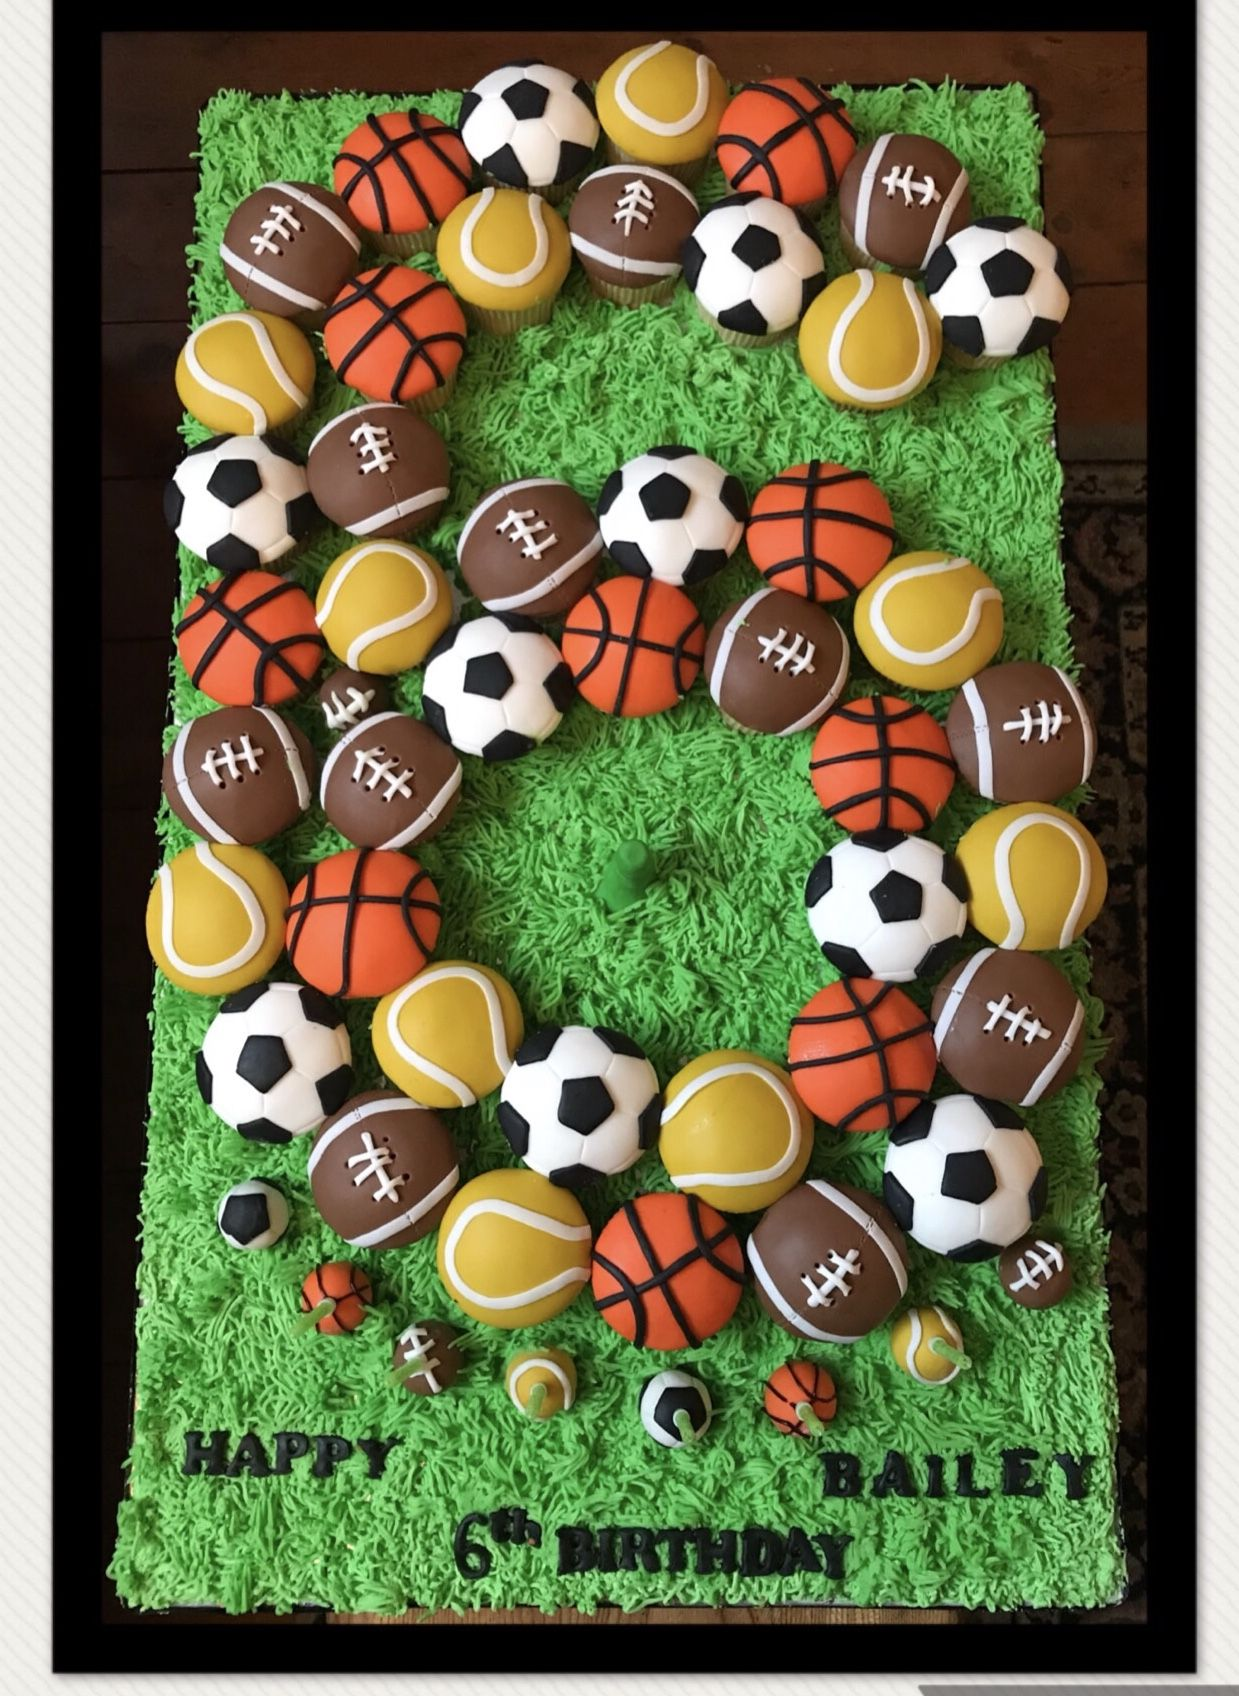 Miraculous Sports Multi Sports Cupcakes Football Basketball Tennis Rugby Funny Birthday Cards Online Alyptdamsfinfo